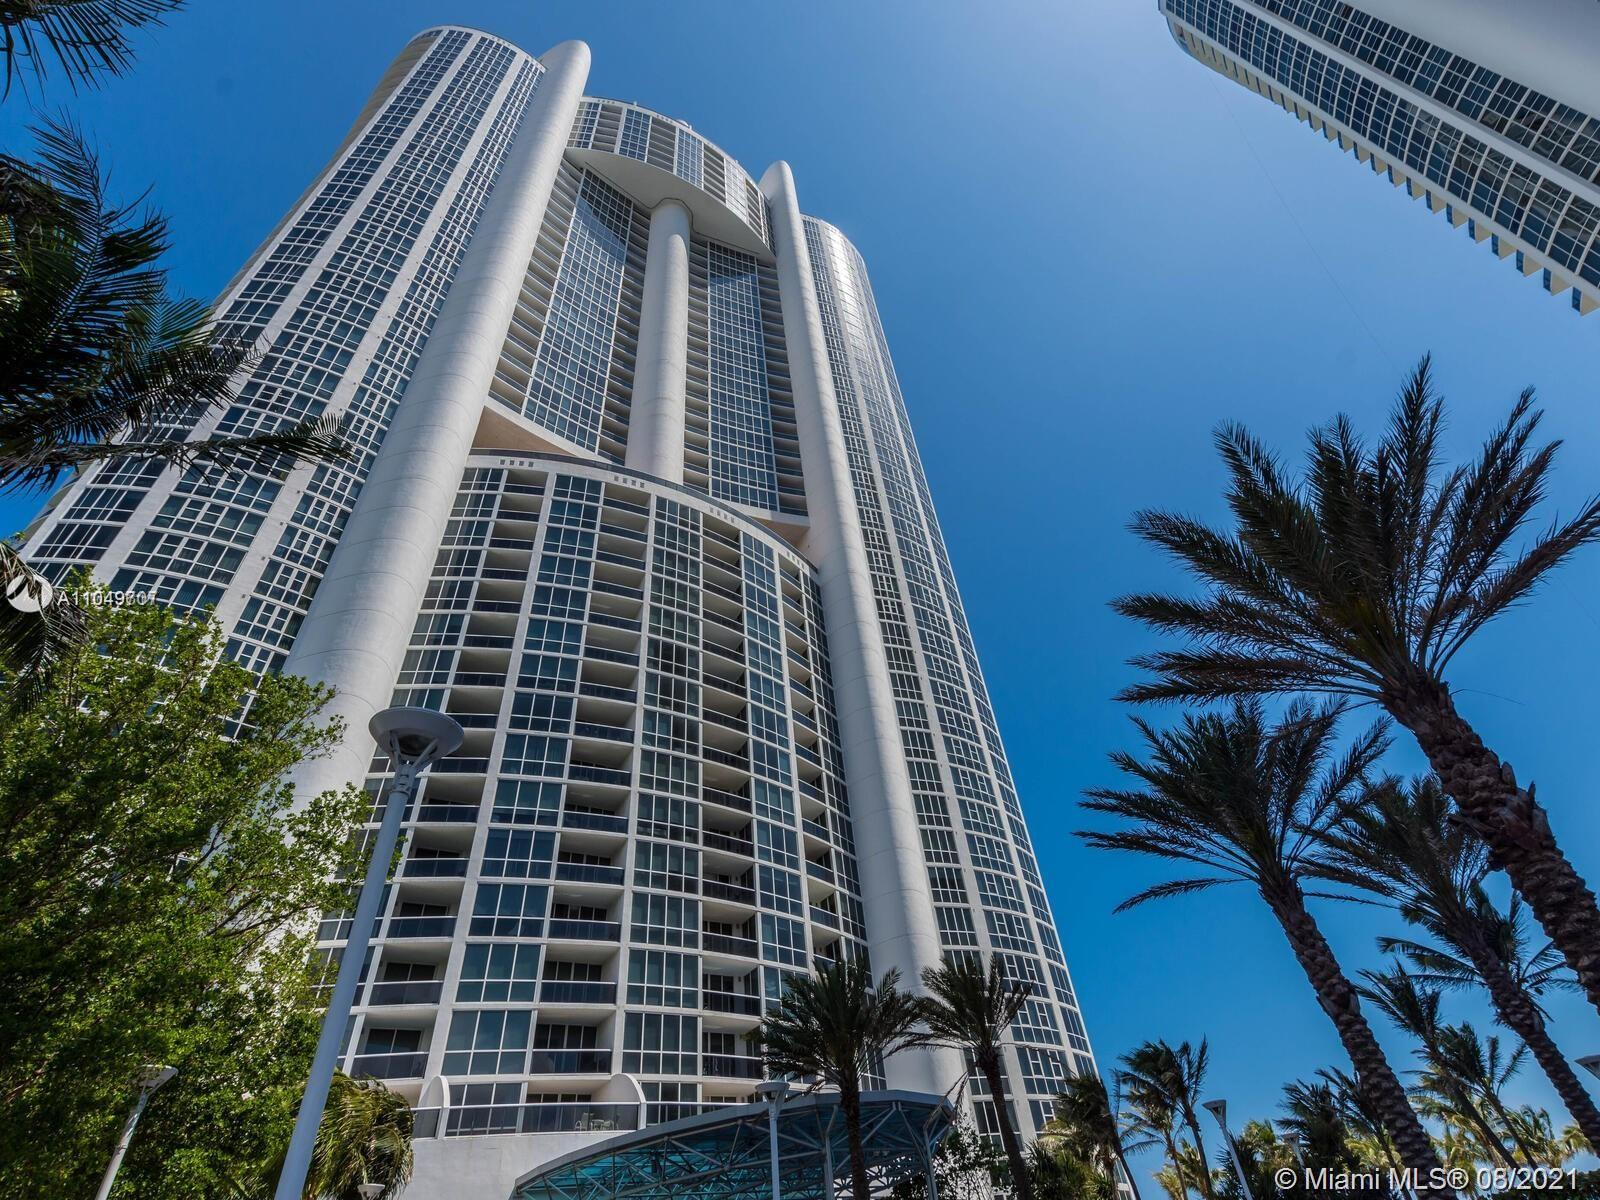 1 bed / 1.5 bath with Intracoastal and partial ocean view, is offered fully furnished, washer and dryer, balcony and valet parking. It can be purchased with unit 1109 which has 4000 sqft.  Enjoy Trump's 5-star resort style living with 3 on-site restaurants, 24/7 room service, concierge, beach club, 3 pools, 4 hot tubs, tennis courts, dog park, luxury spa, gym, free valet.